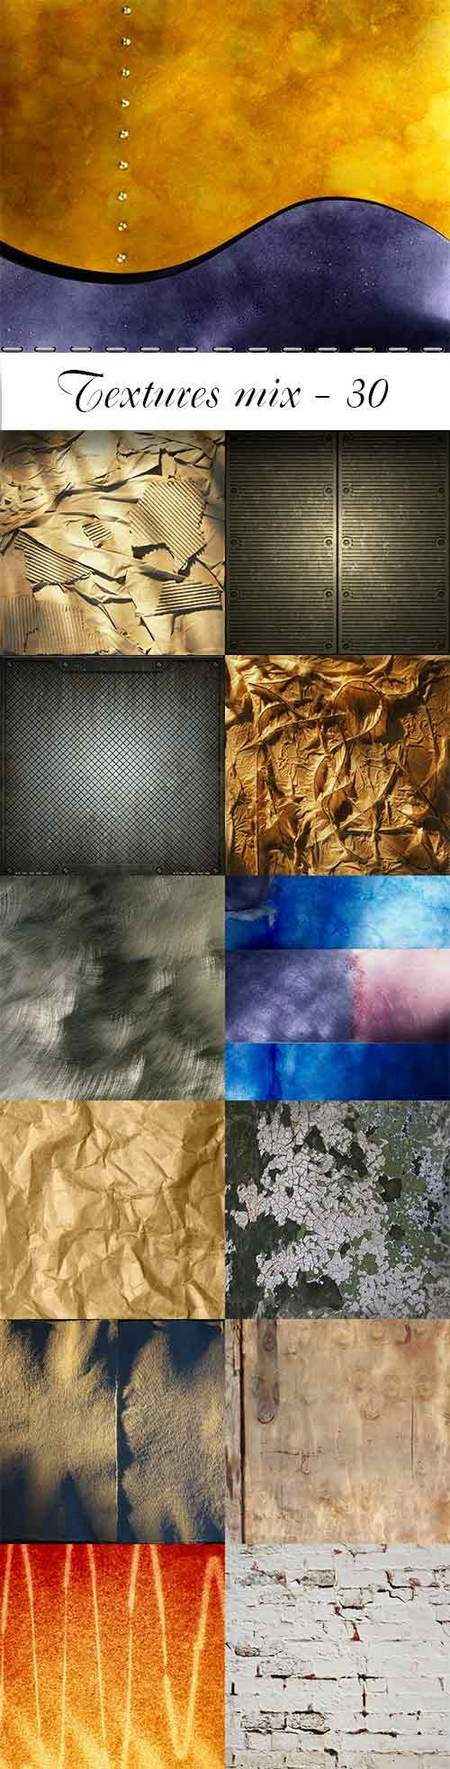 Textures mix - 25 jpeg, max 6000 x 6000 px, free download